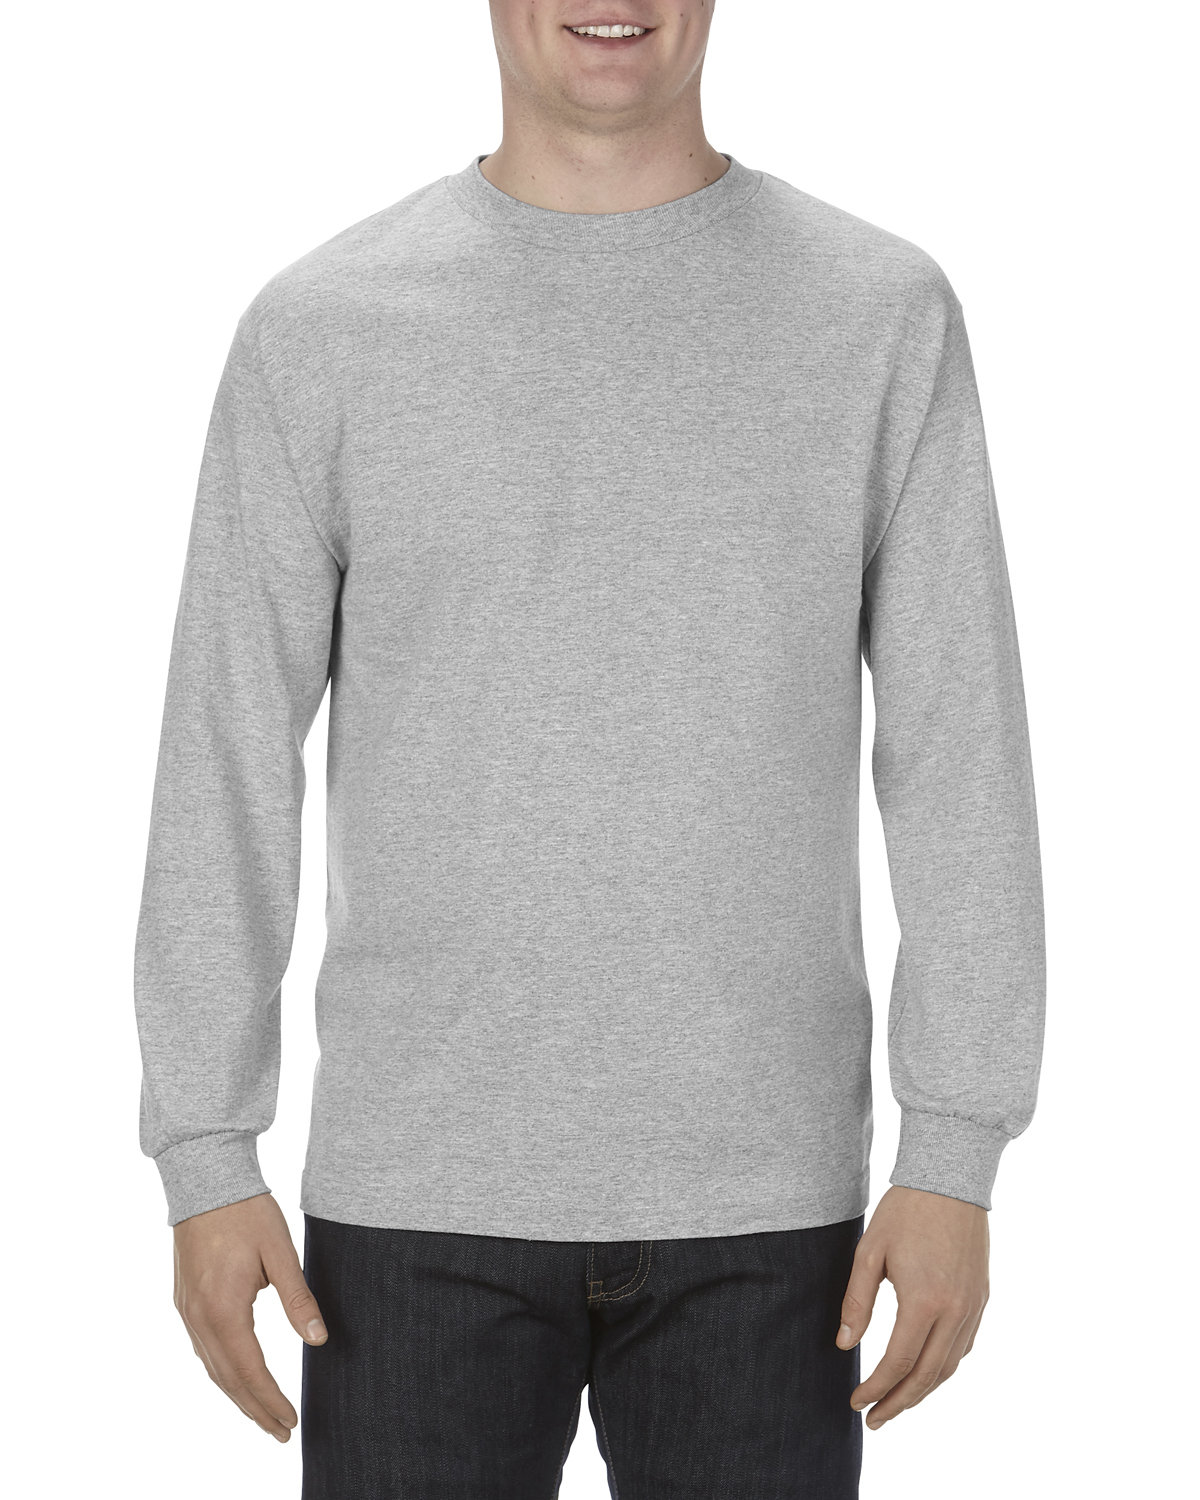 Alstyle Adult 6.0 oz., 100% Cotton Long-Sleeve T-Shirt ATHLETIC HEATHER